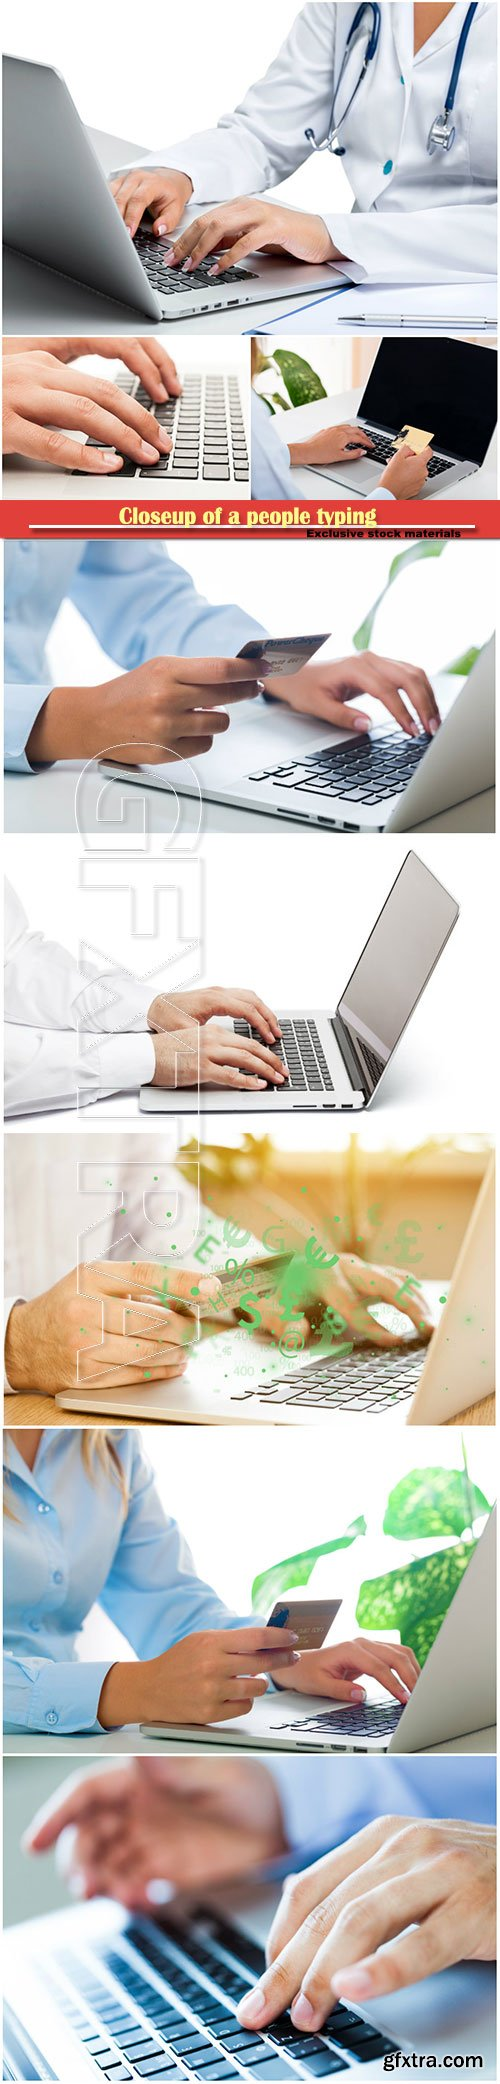 Closeup of a people typing on a laptop and holding a credit card